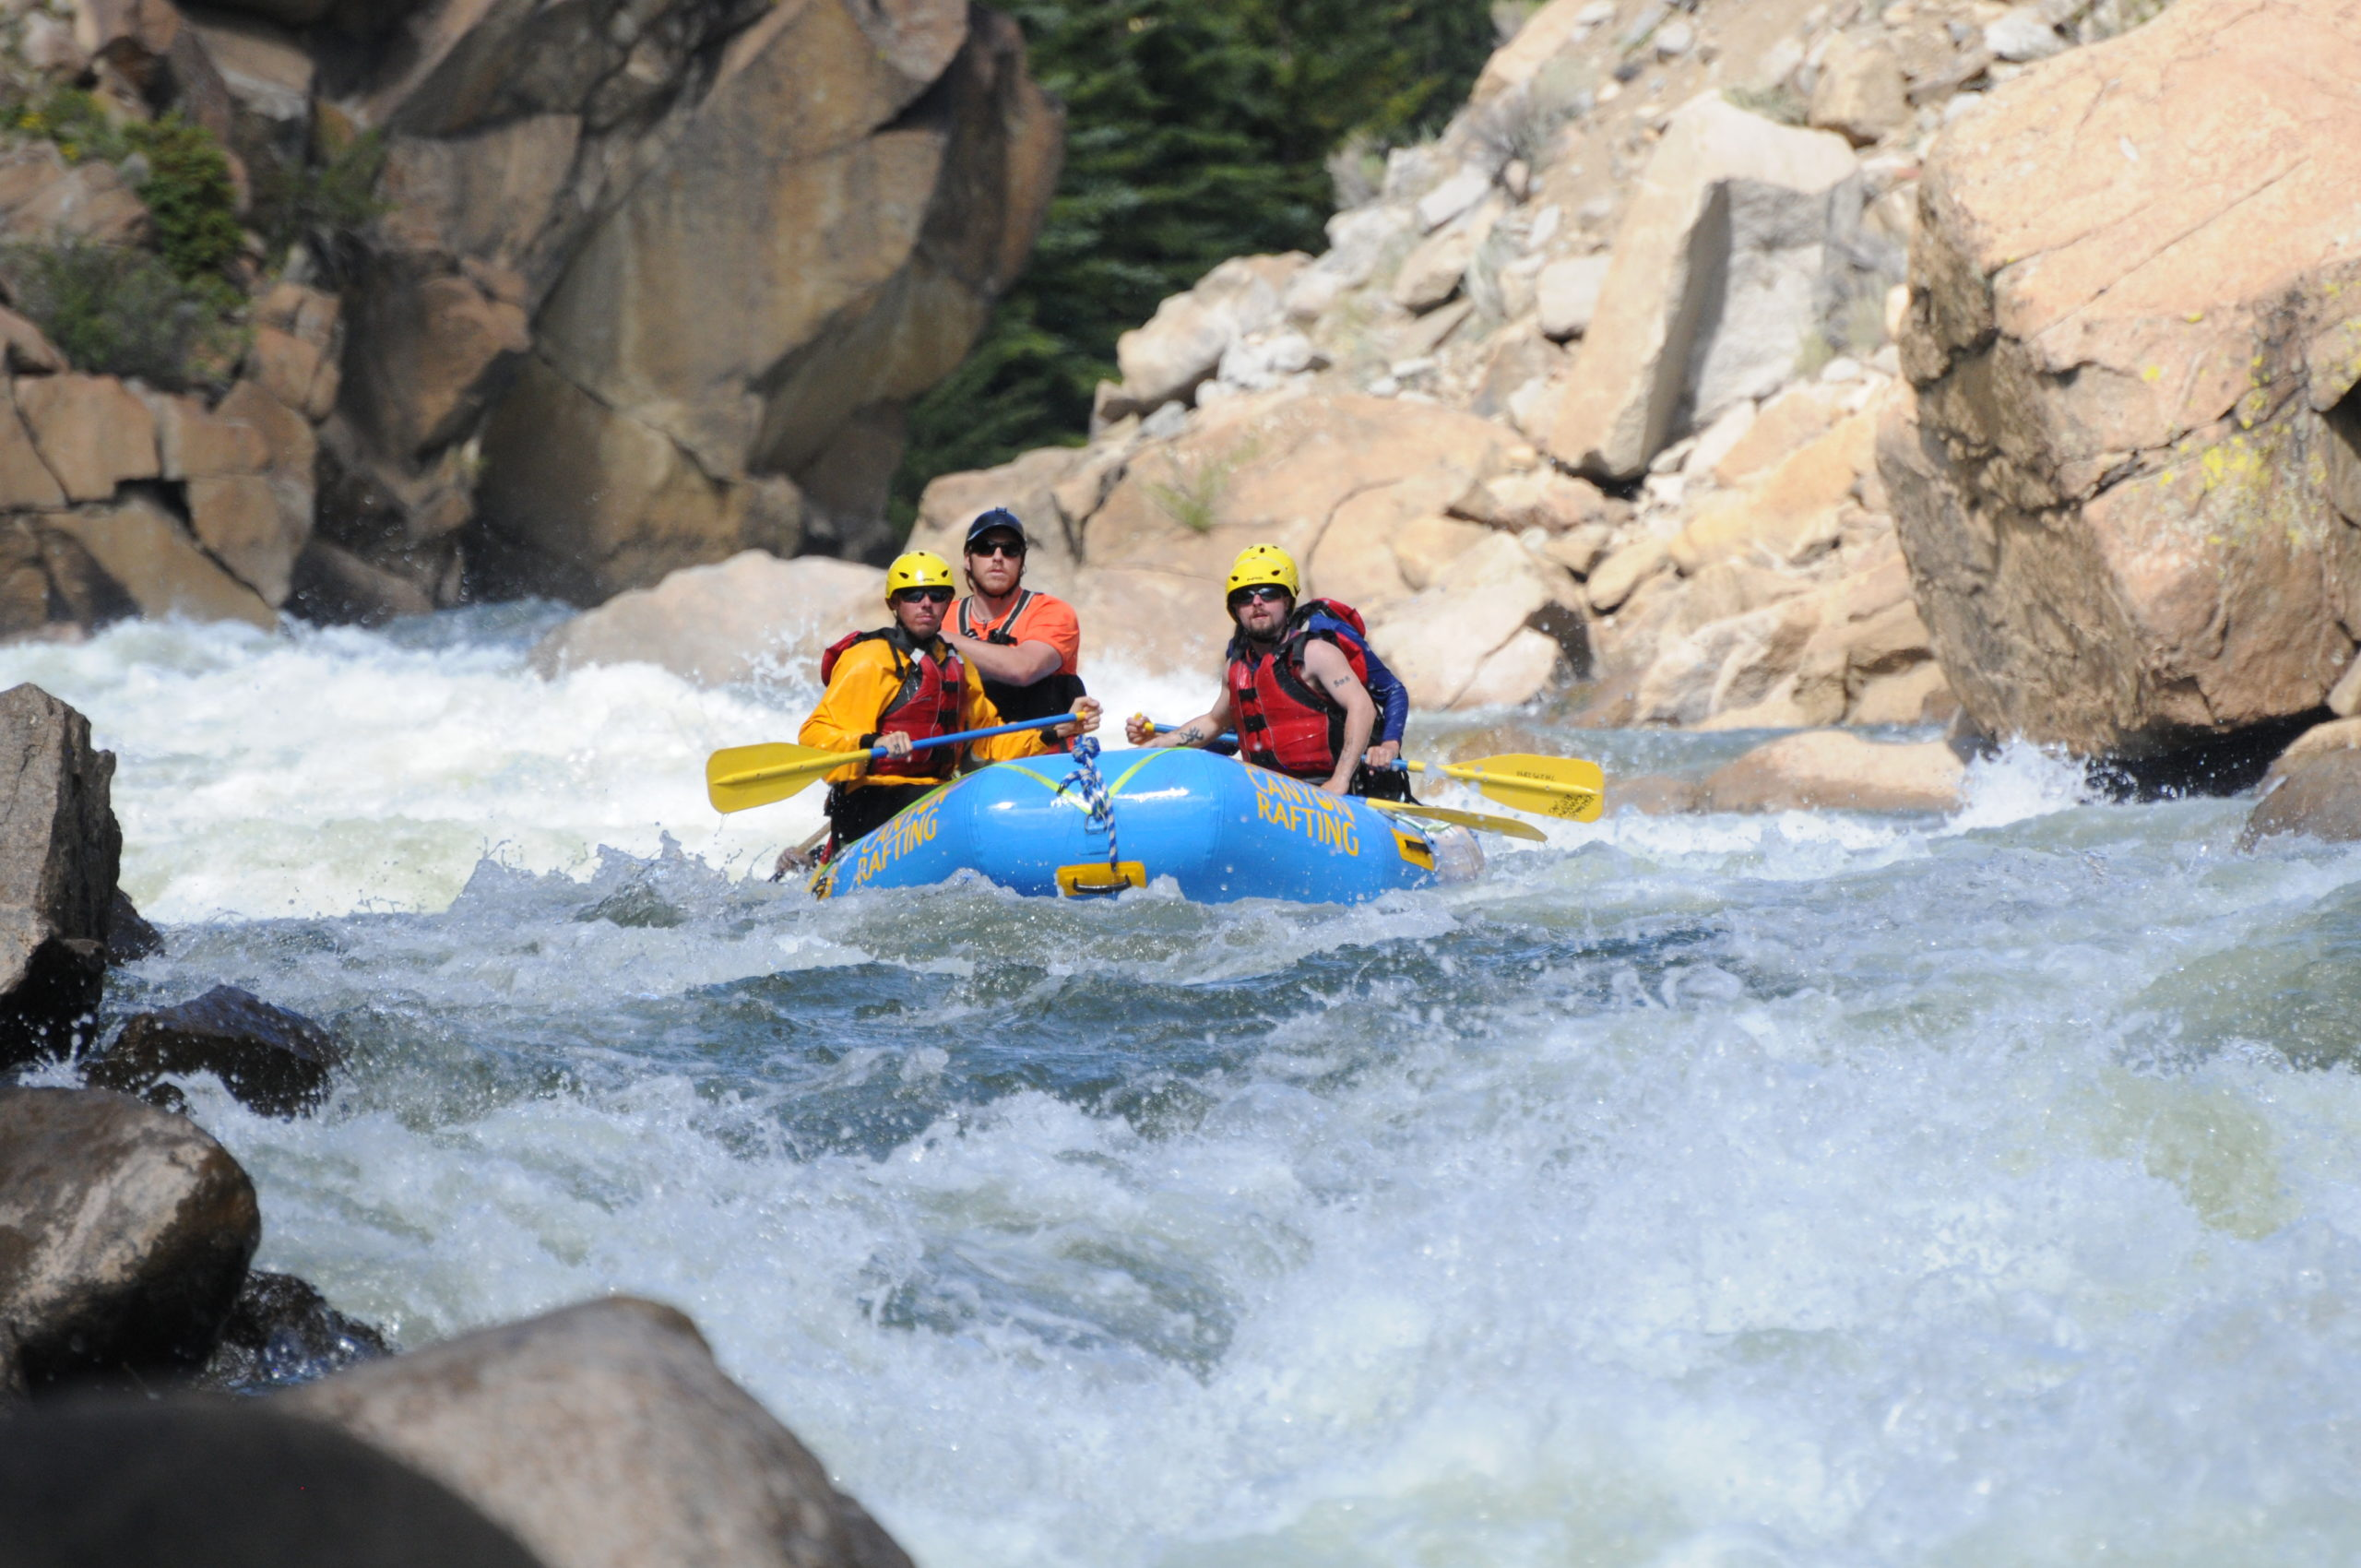 Pine Creek rapid whitewater rafting near buena vista co